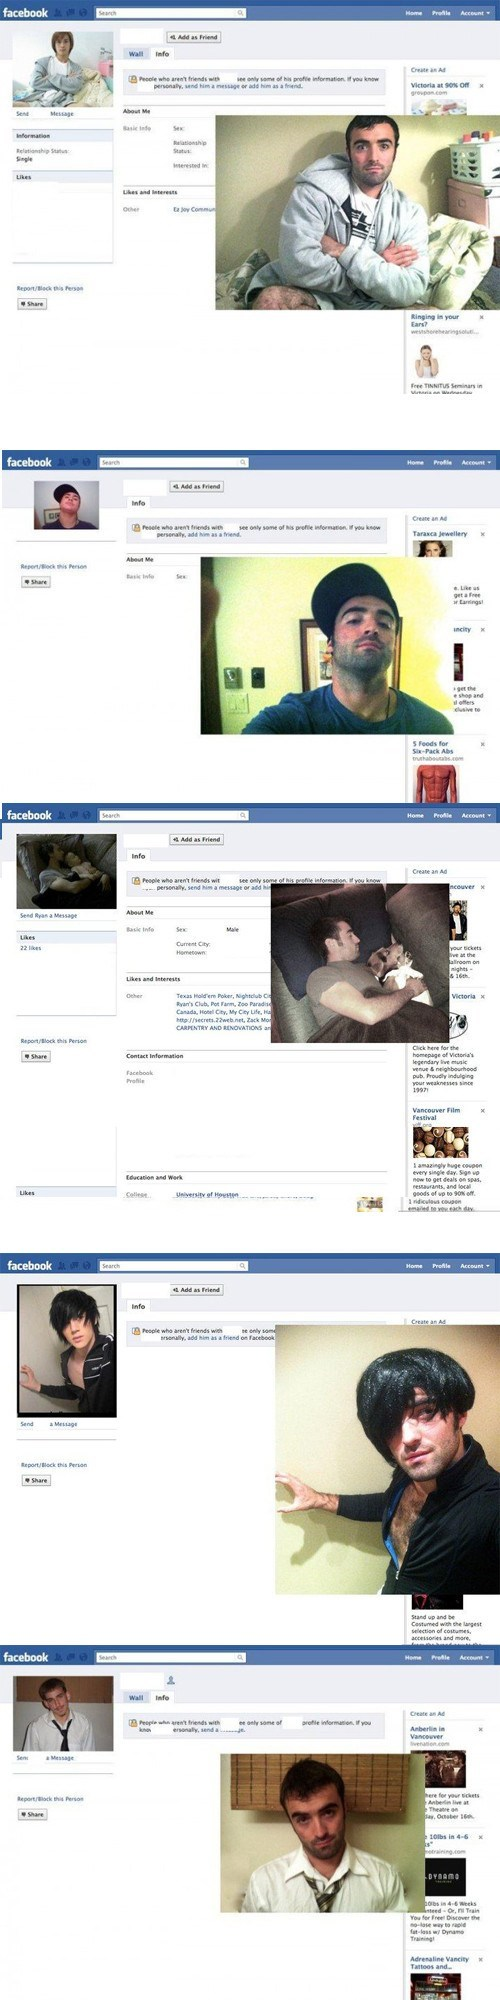 Guy Reproduces People's Profile Pictures Before Friending Them on Facebook